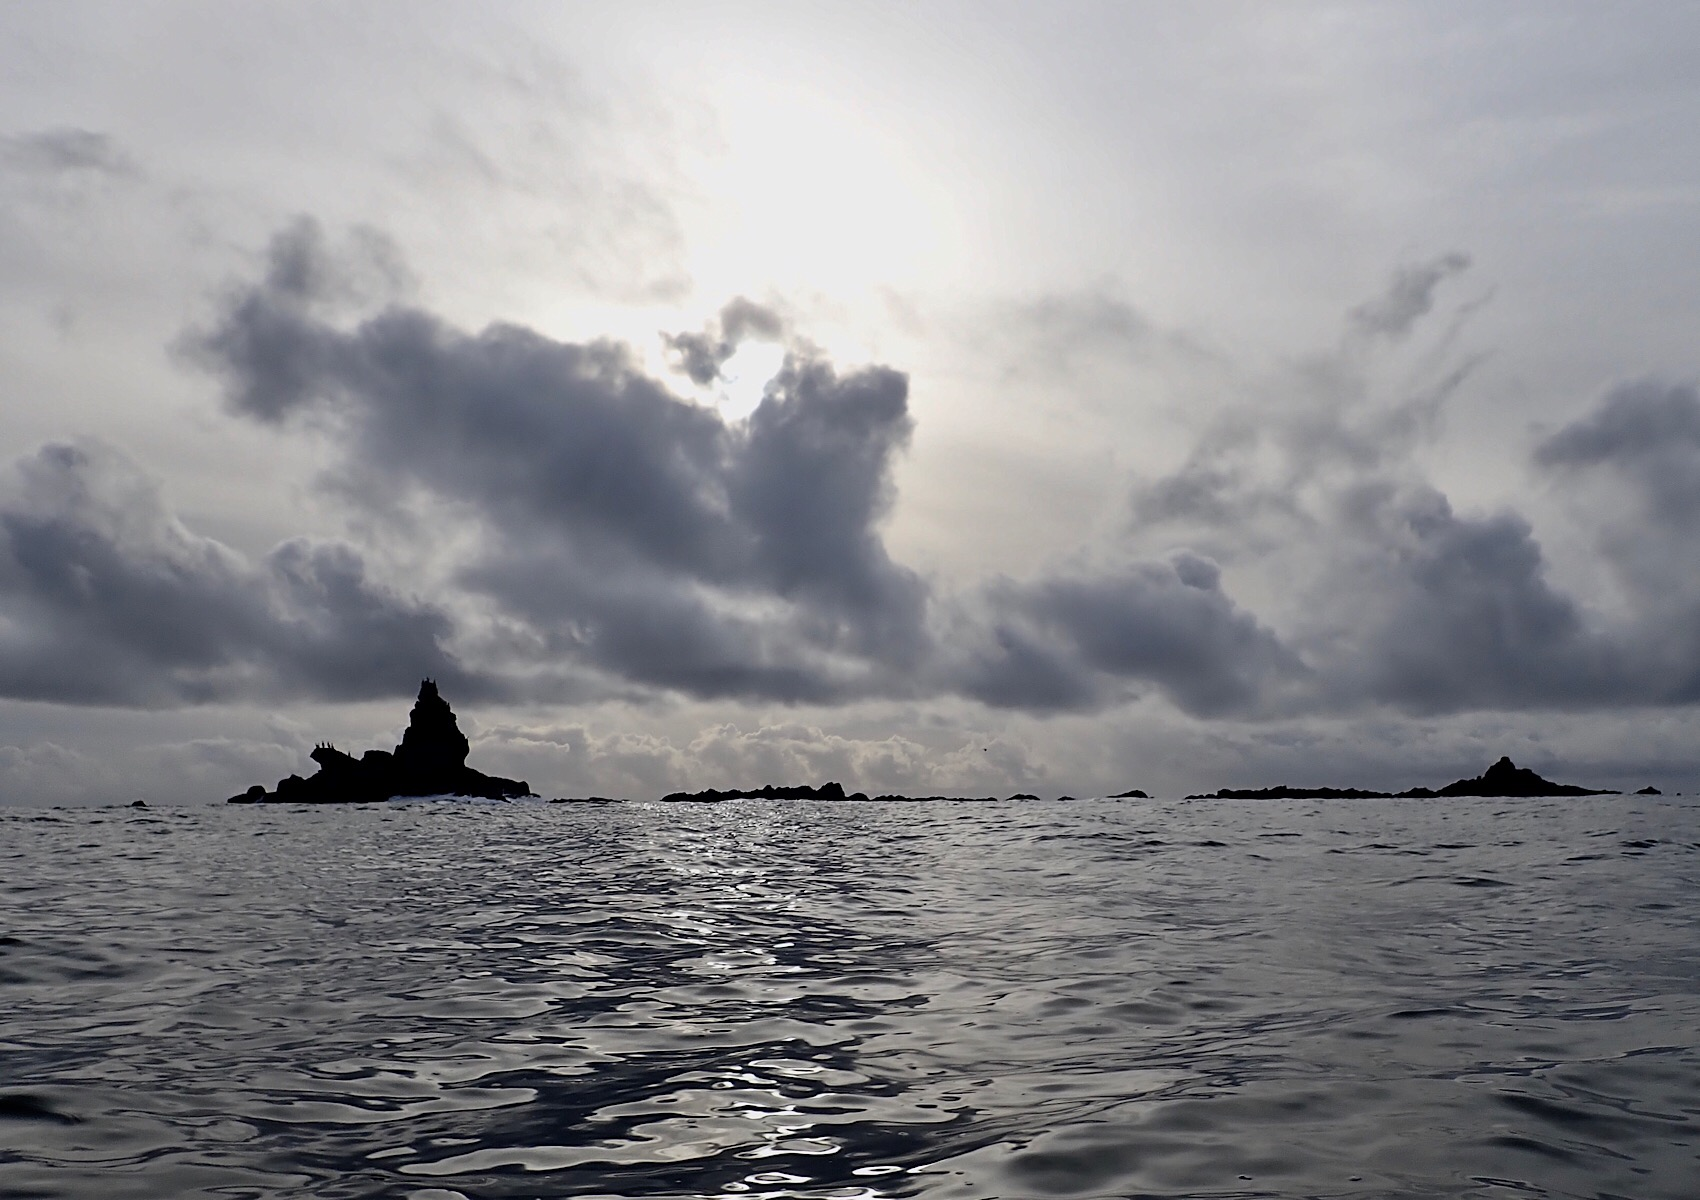 Barrier rocks on the way to Kyuquot